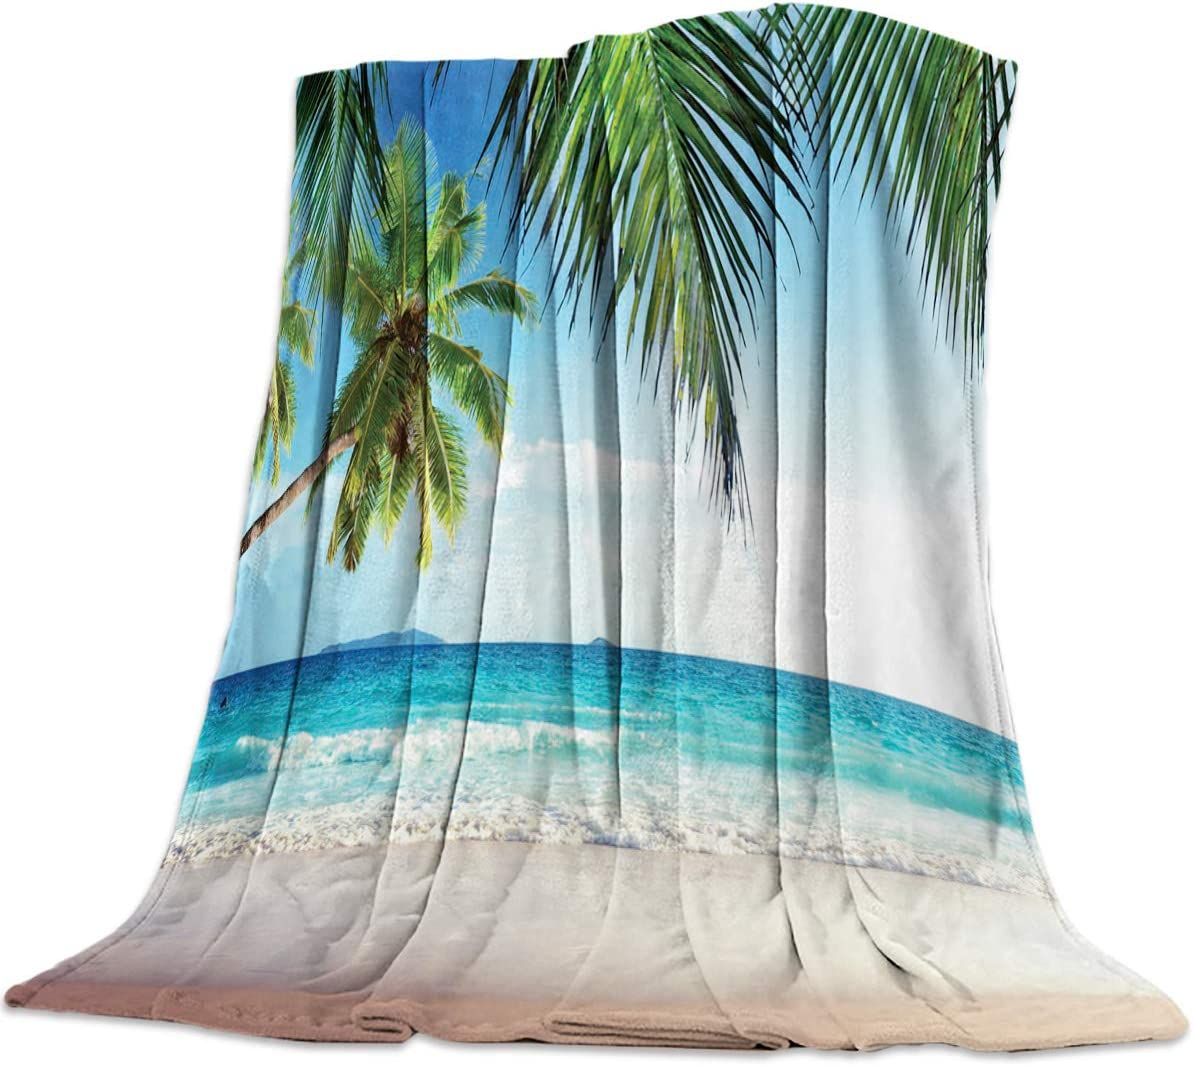 Funy Decor Palms Tree Ocean Tropical Sea Super Soft Throw Blankets Beach Theme Warm Cozy Flannel Bed Blanket Decorative for Home Sofa Couch Chair Living Bedroom,60x80